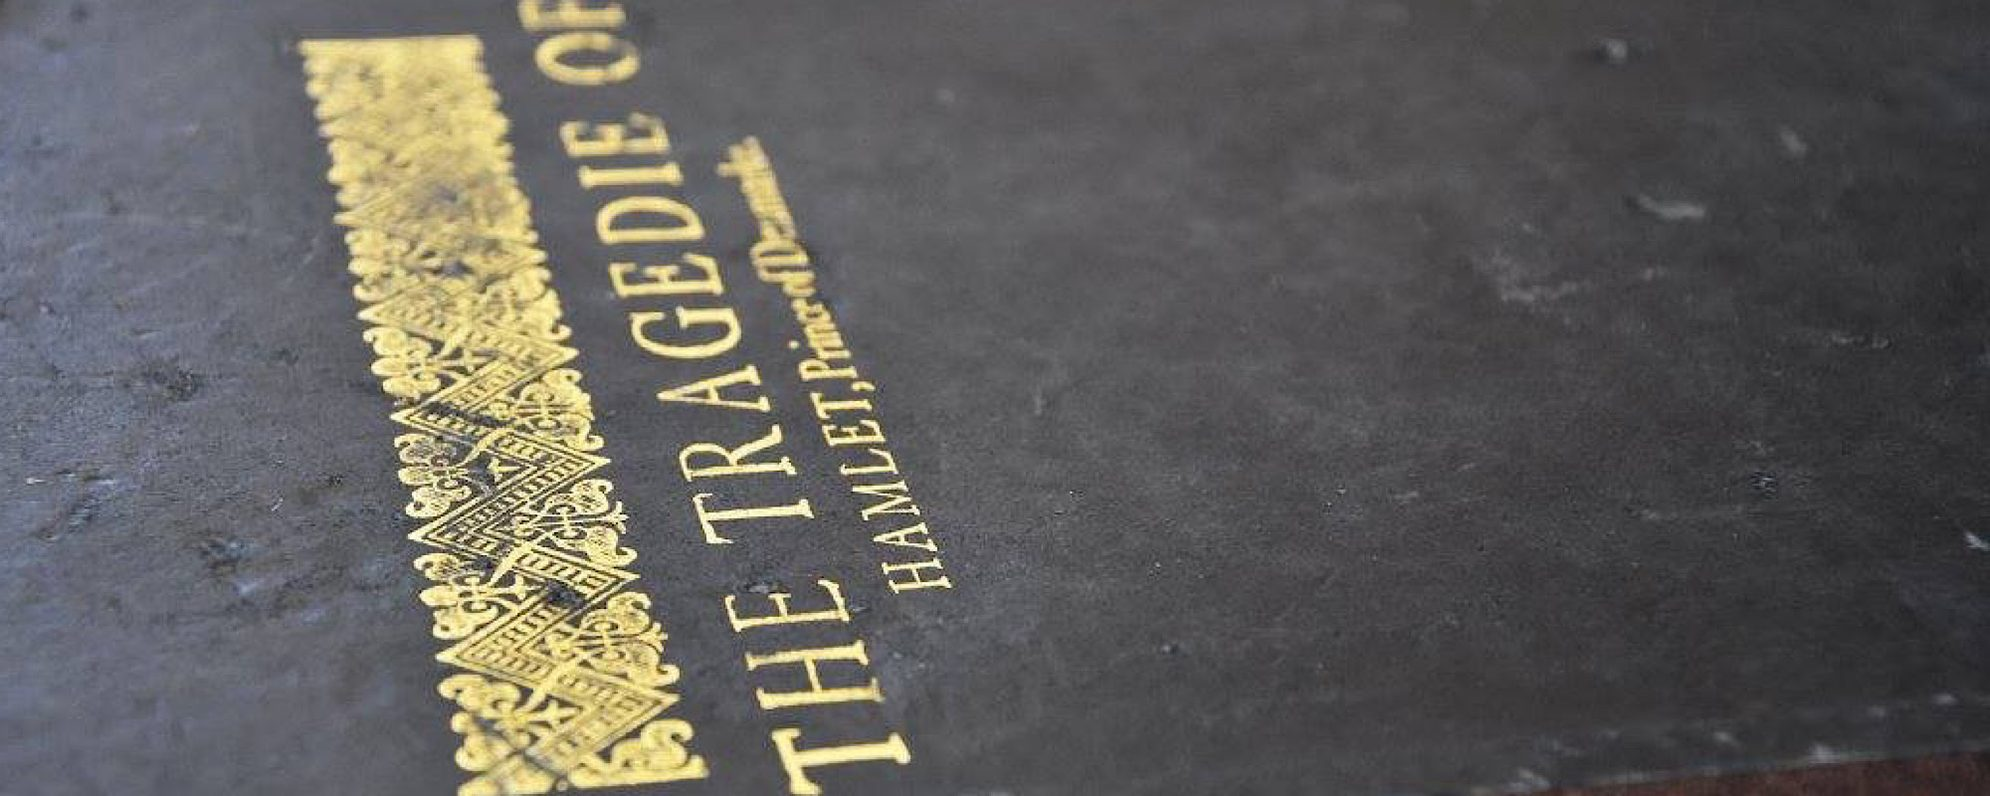 A black book with a gold title on it which reads The Tragedie of Hamlet of Denmark